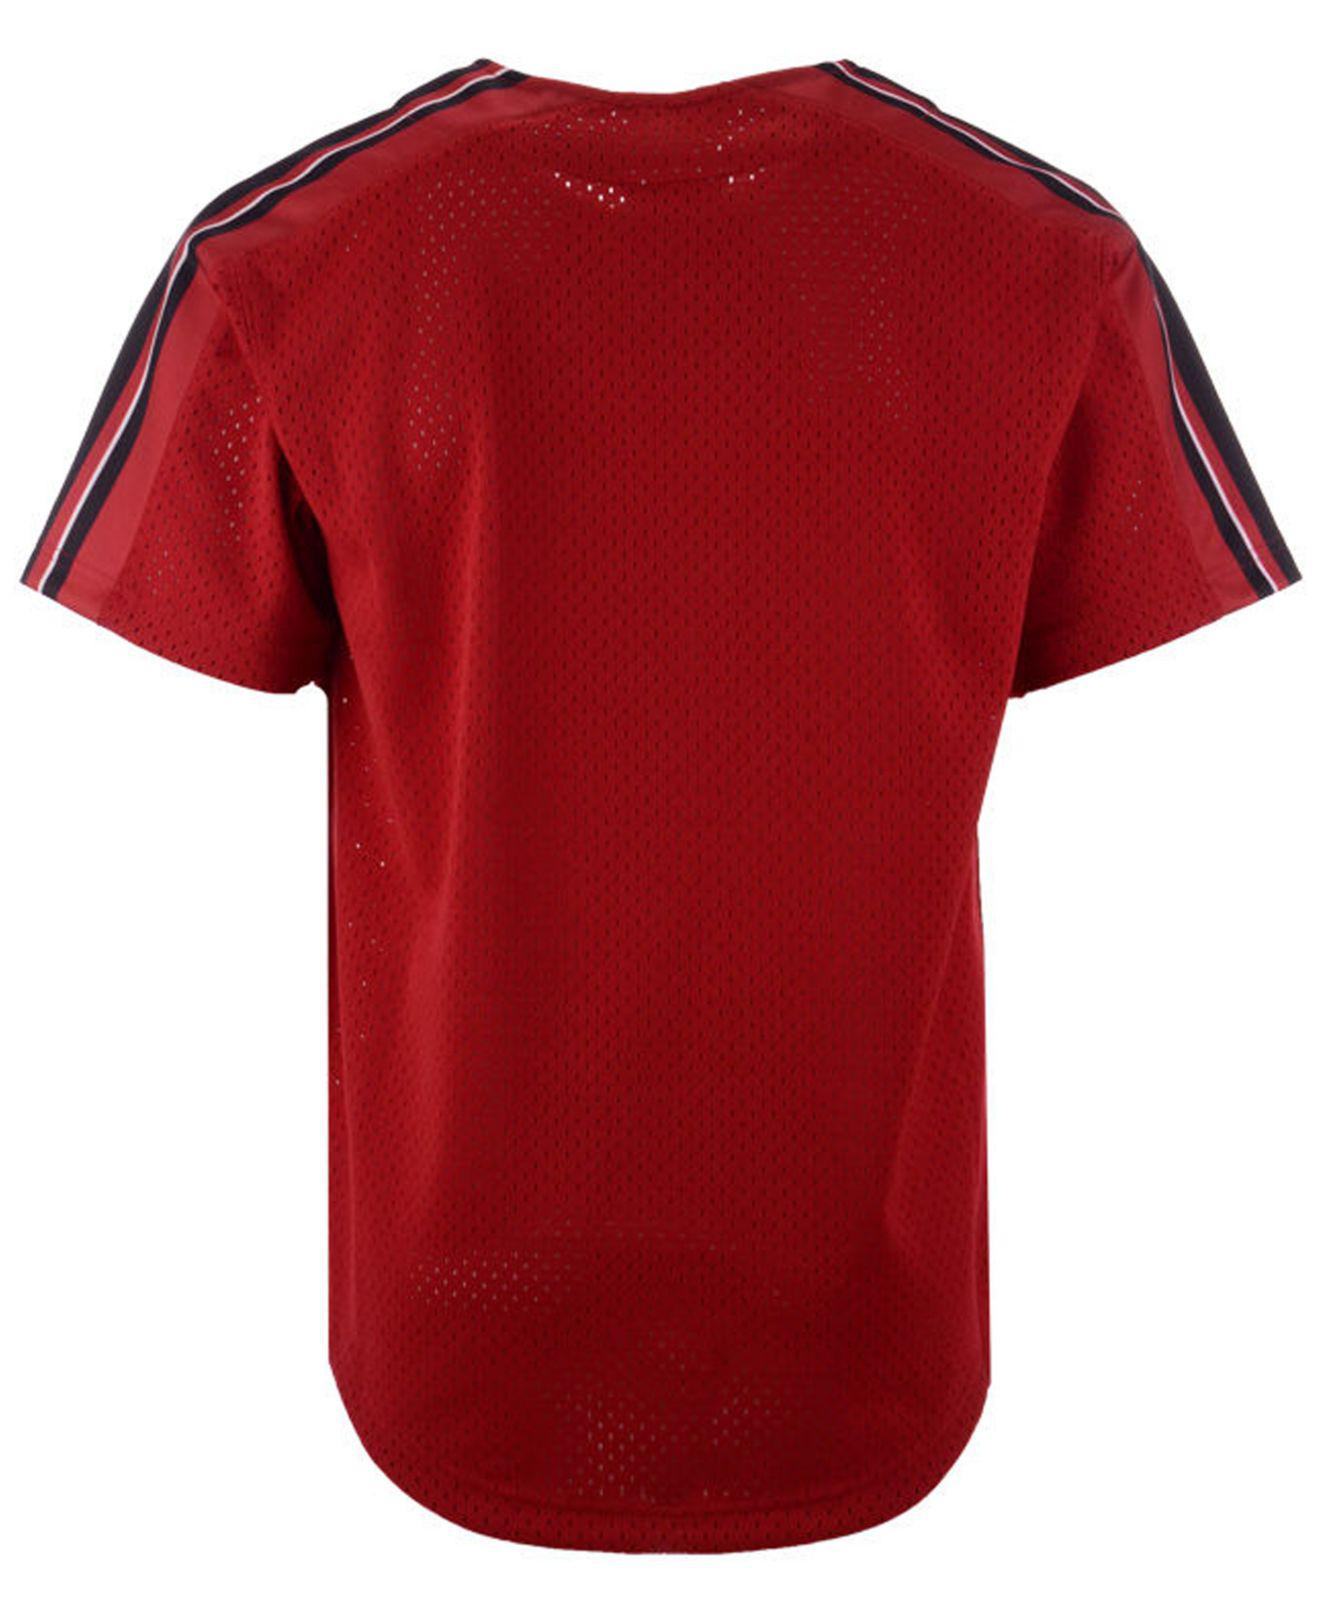 039a5f30d Lyst - Mitchell   Ness San Francisco 49ers Winning Team Mesh Button Front  Jersey in Red for Men